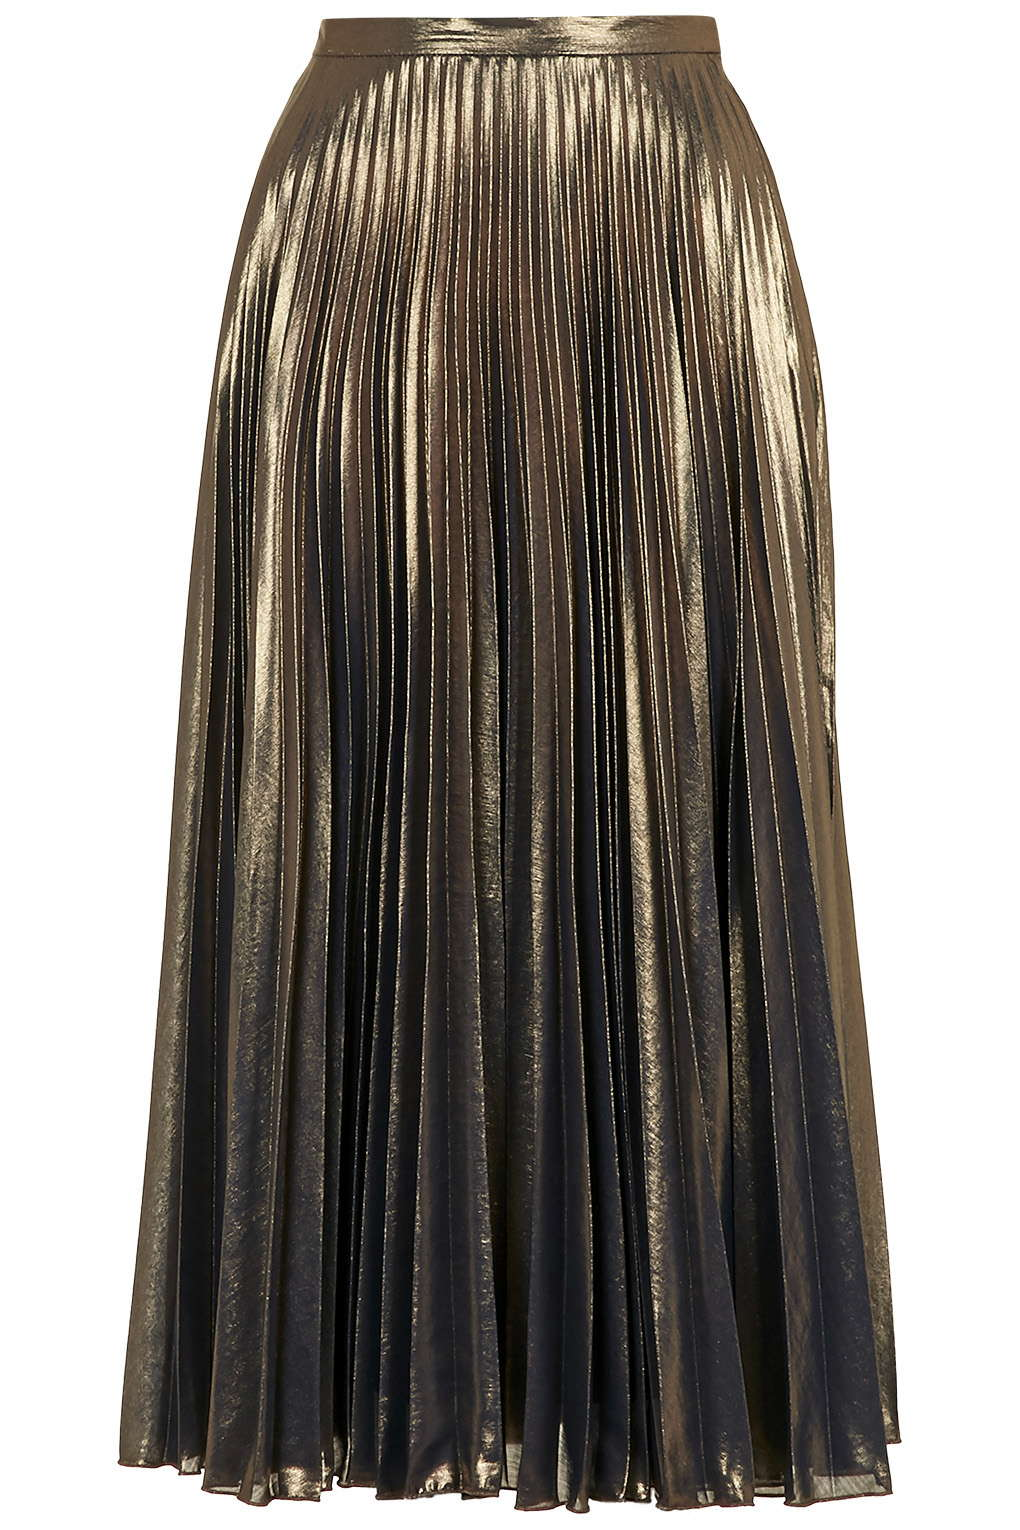 Metallic Pleated Midi Skirt - Topshop